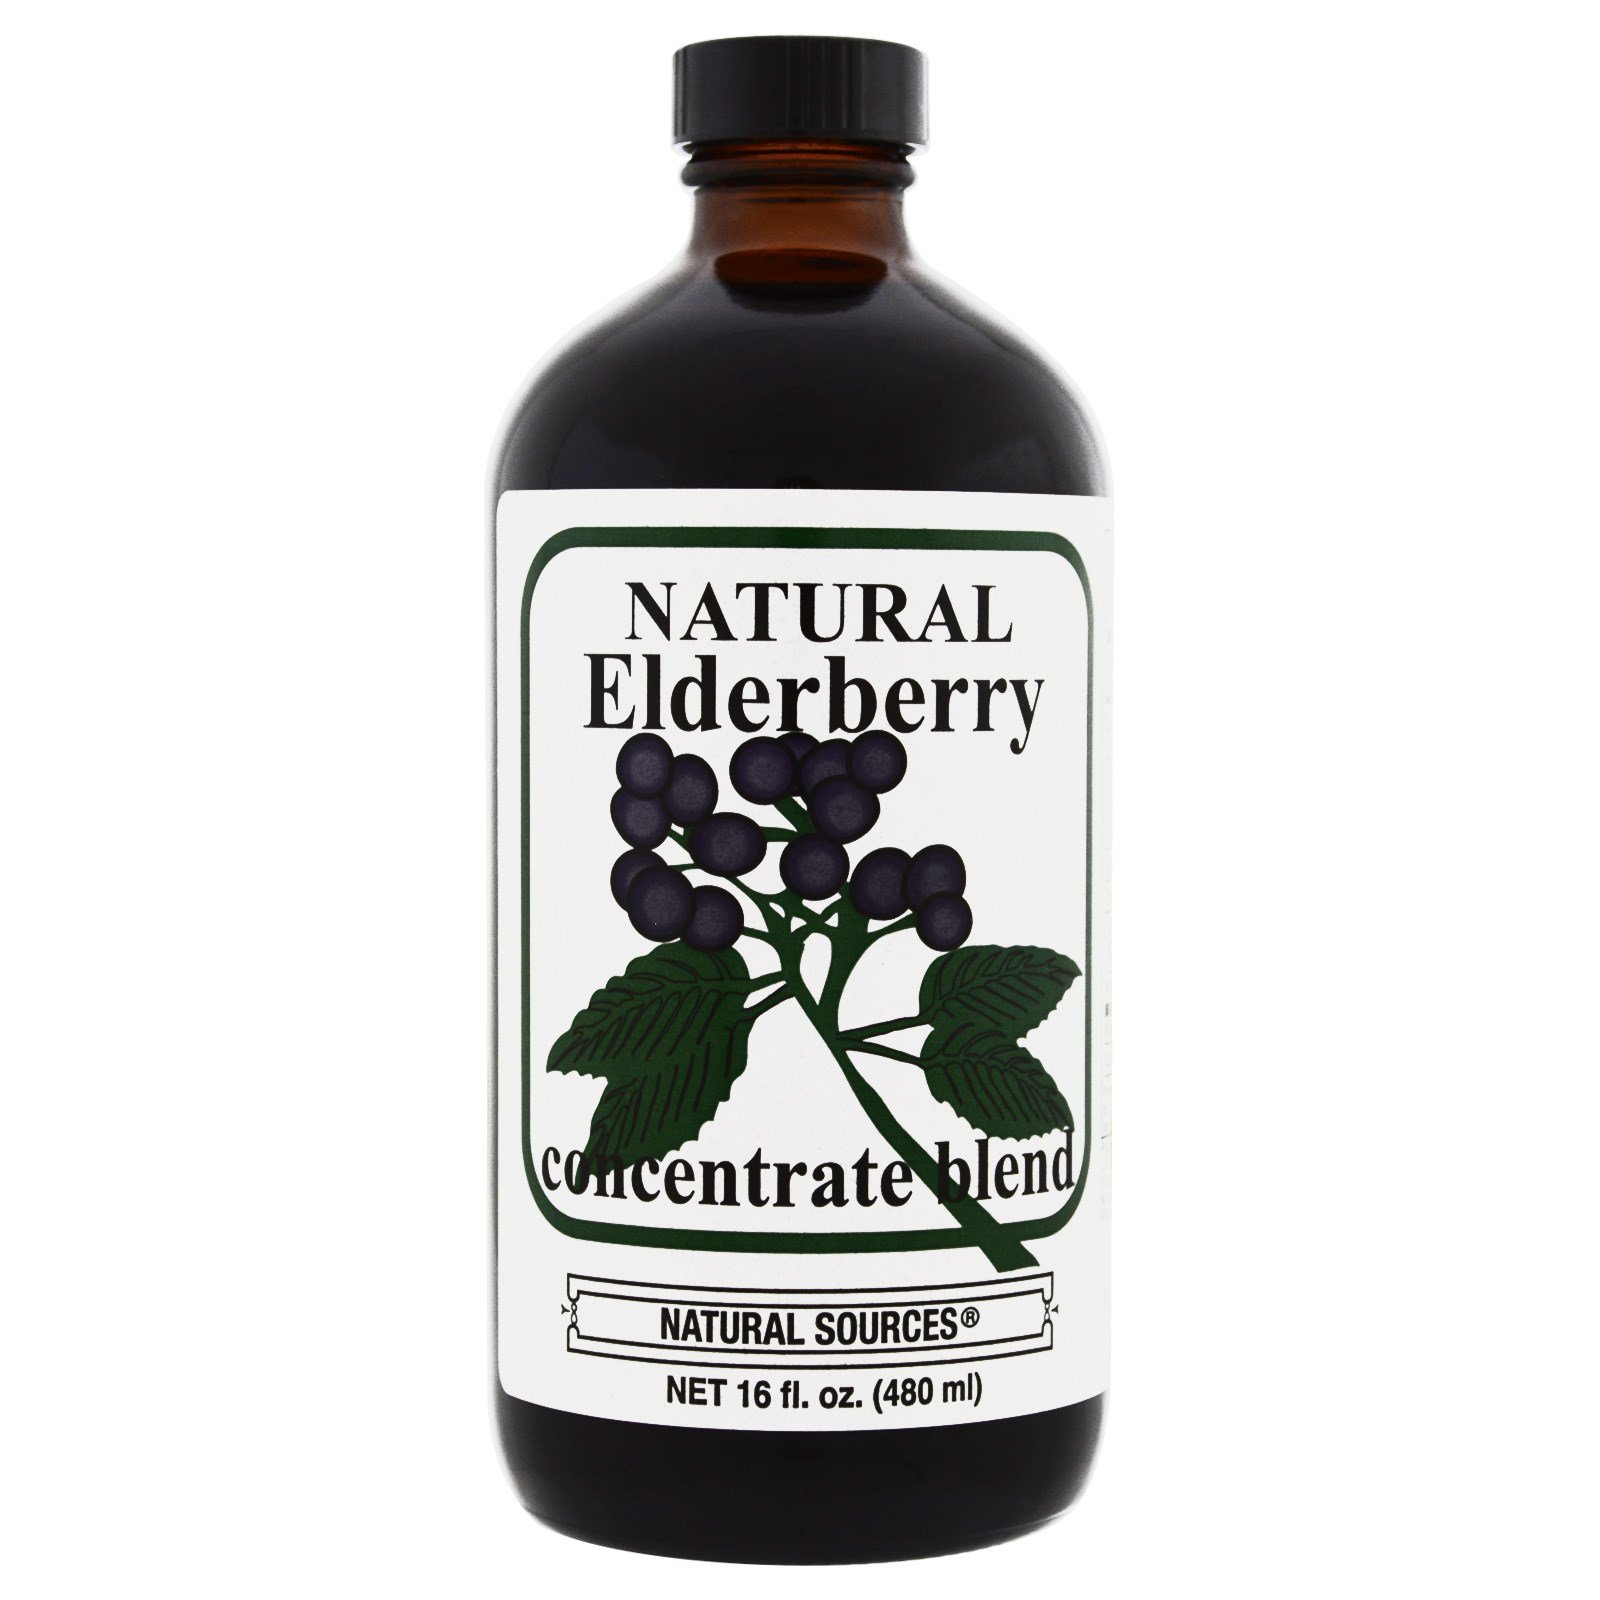 Image of Elderberry Concentrate